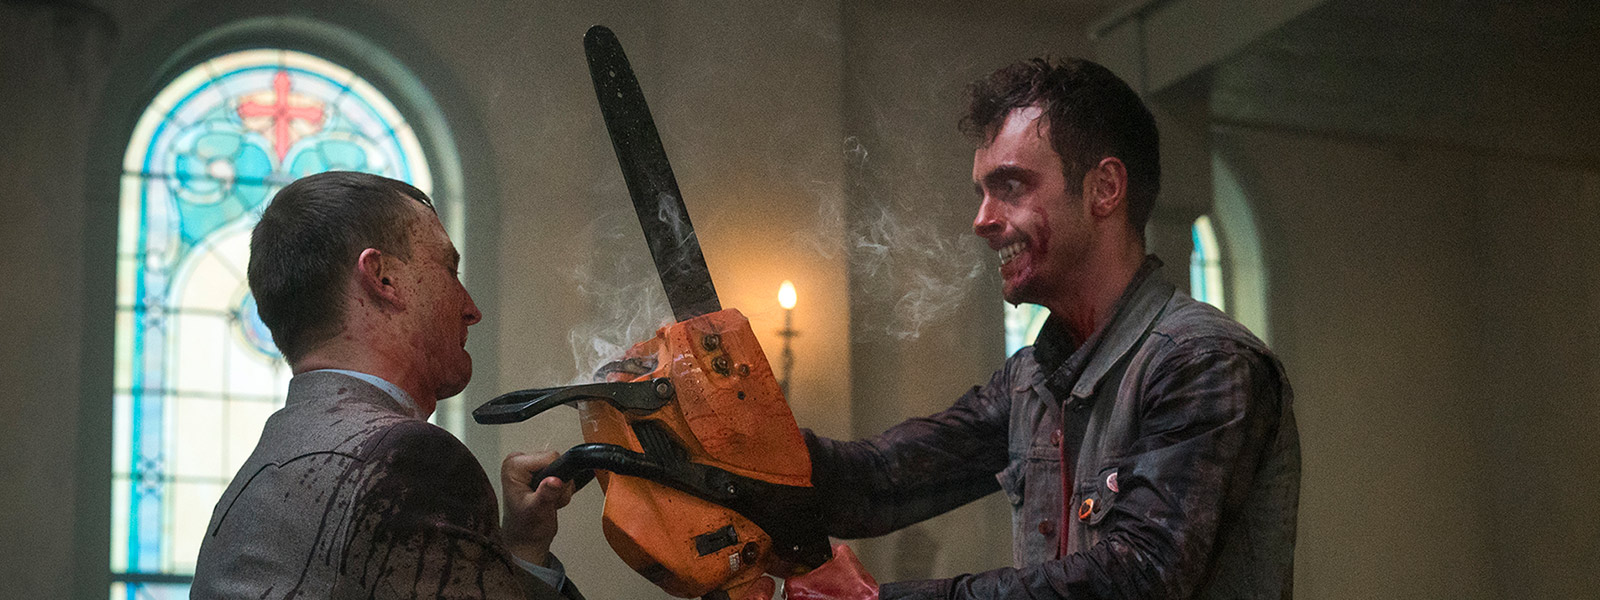 preacher-season-1-post-101-tom-brook-fiore-cassidy-joseph-gilgun-800×600